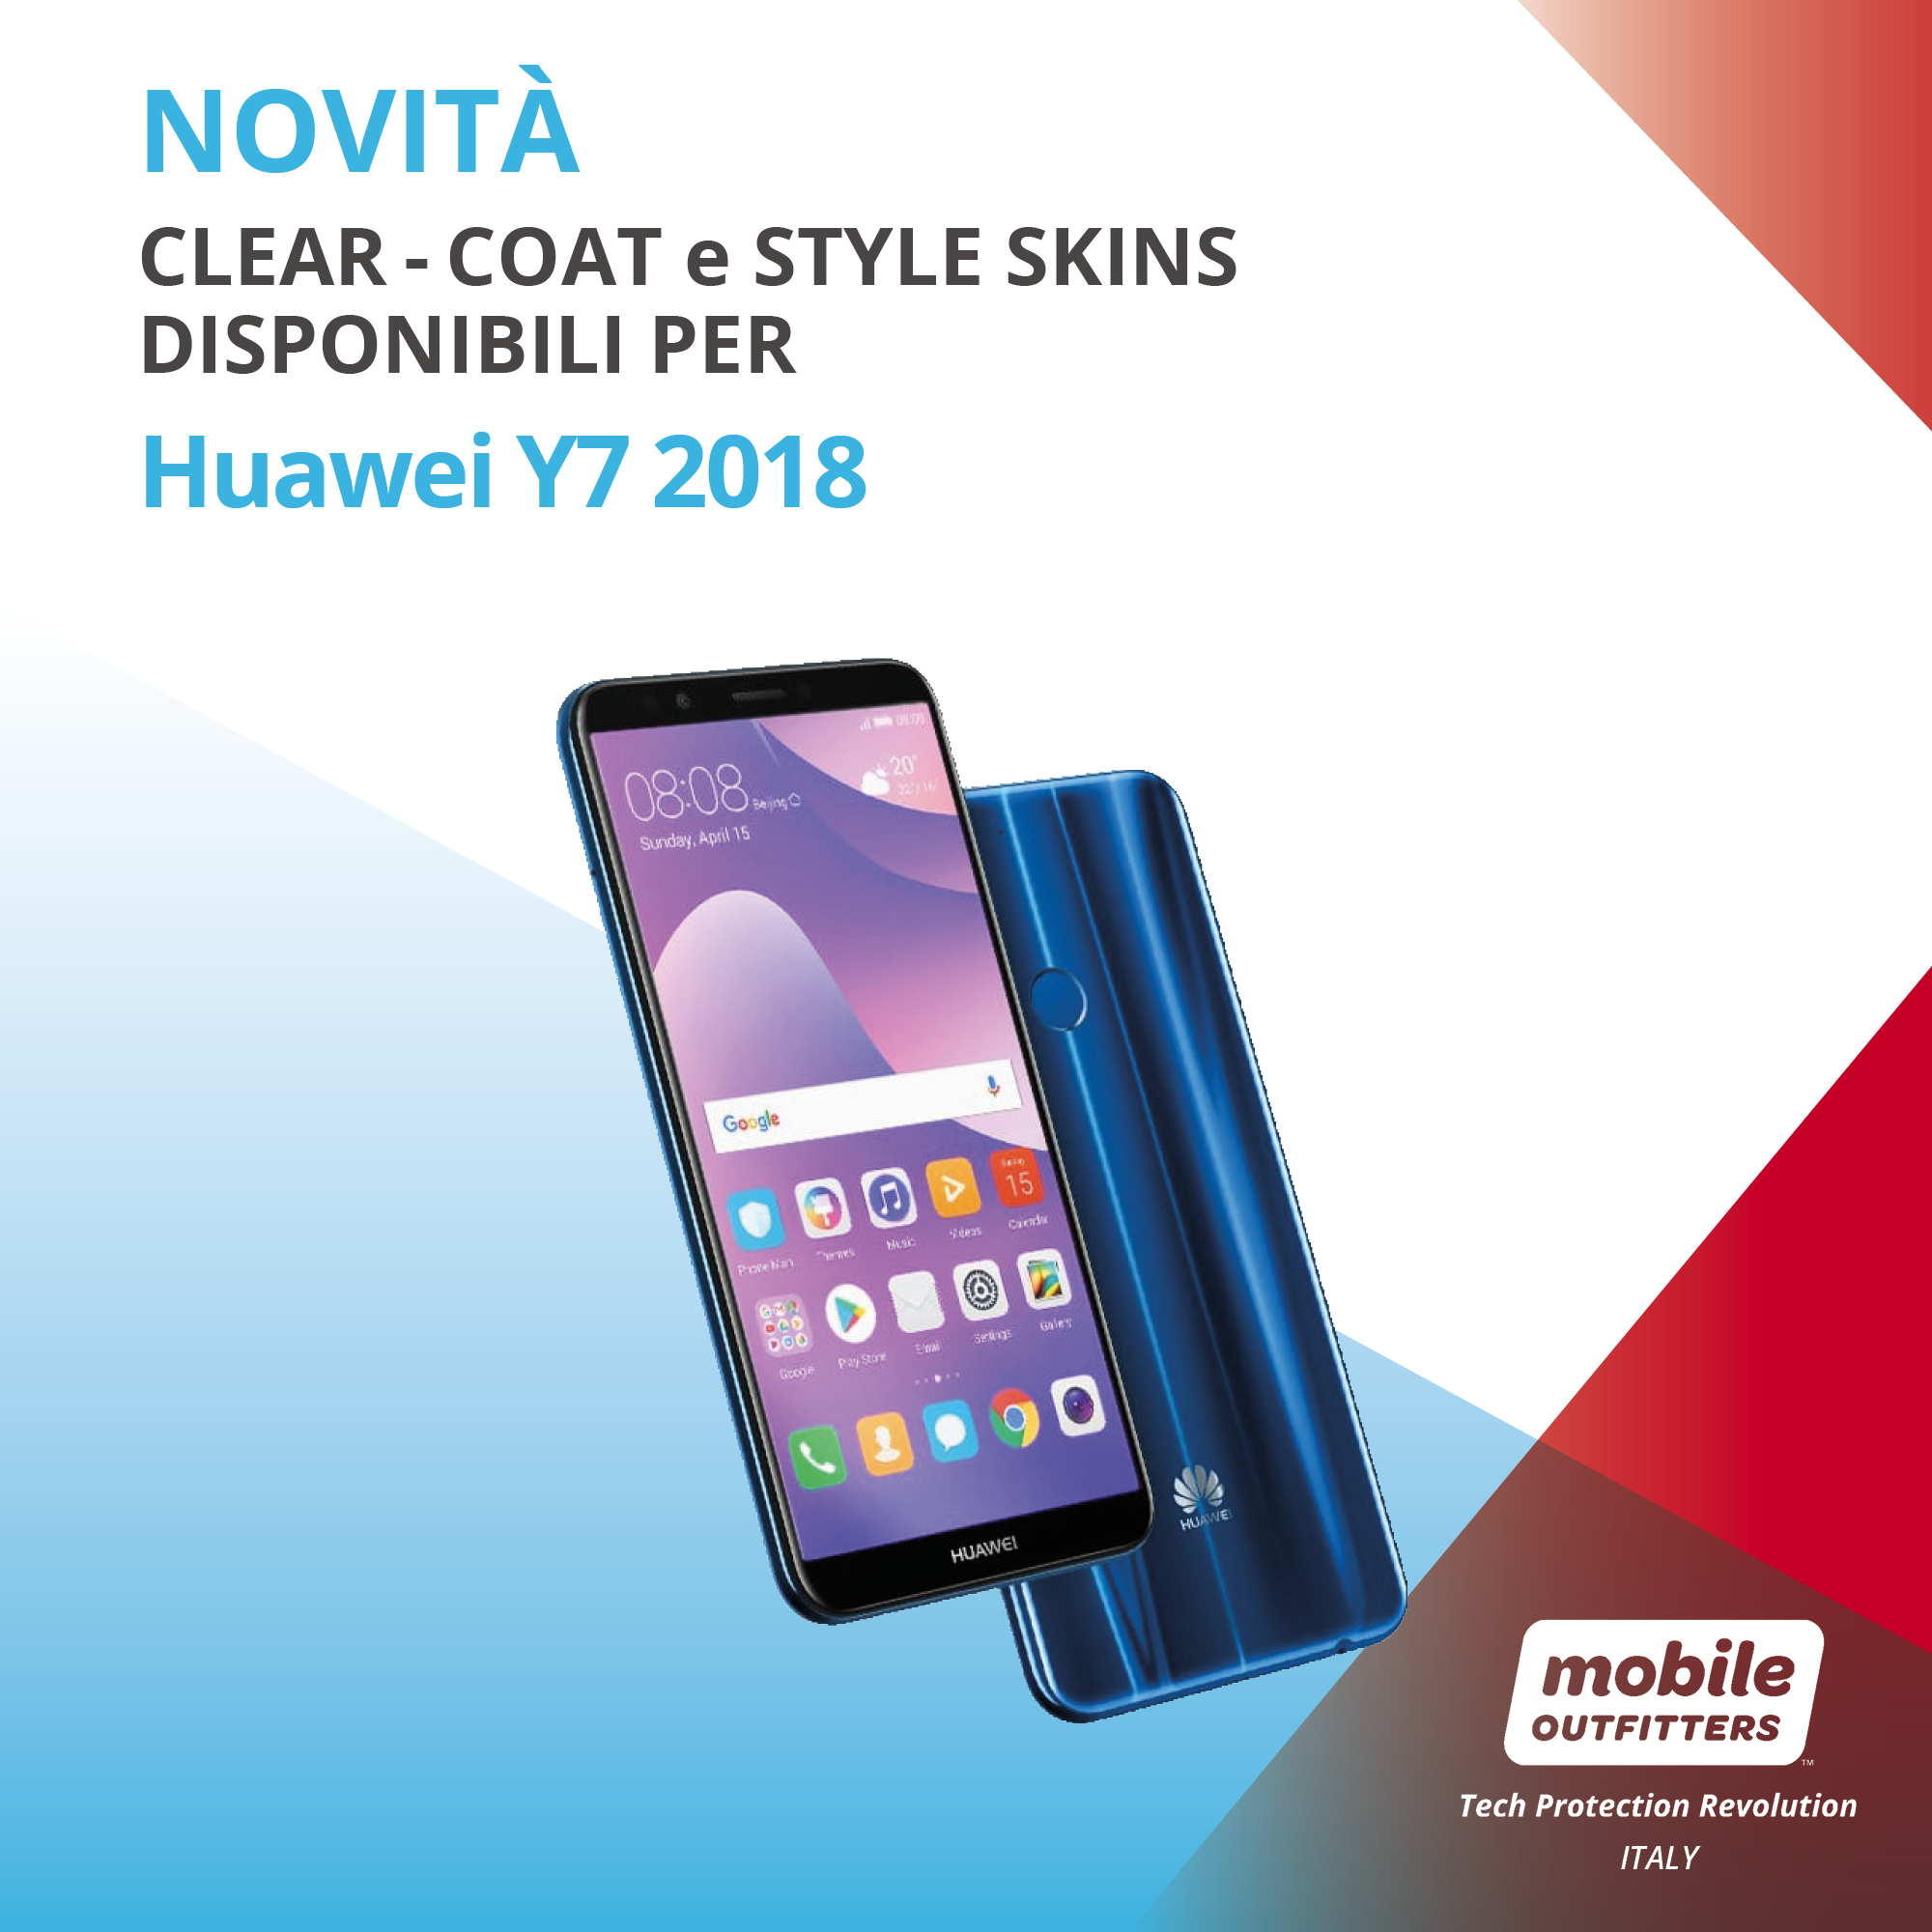 07_06_MOBILE OUTFITTERS_HUAWEI Y7 2018